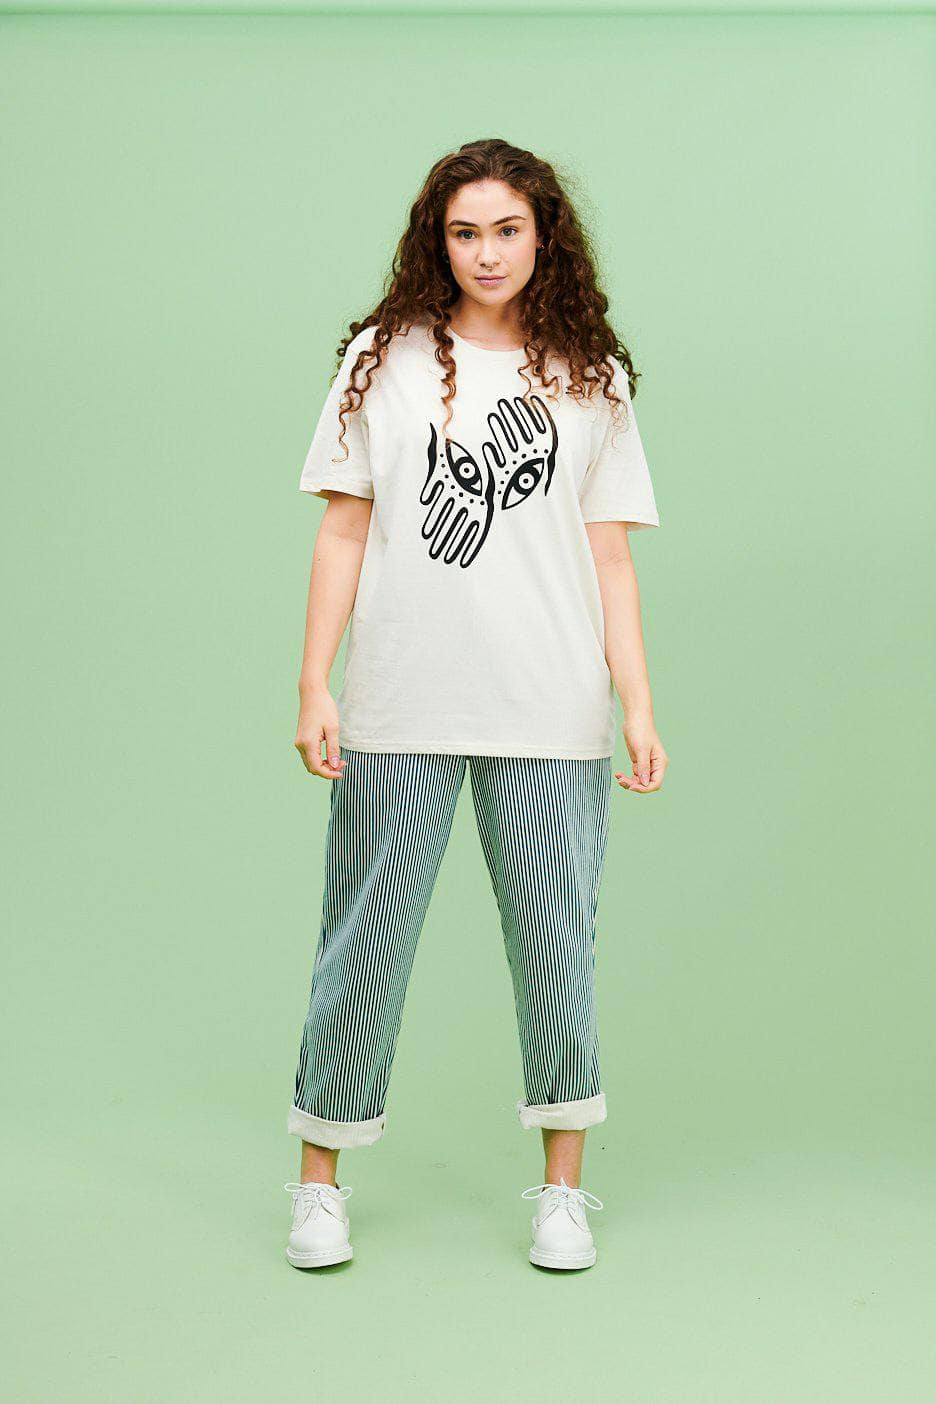 Lucy & Yak Tops All Seeing Limited Edition Tee In White By Helen Harlow